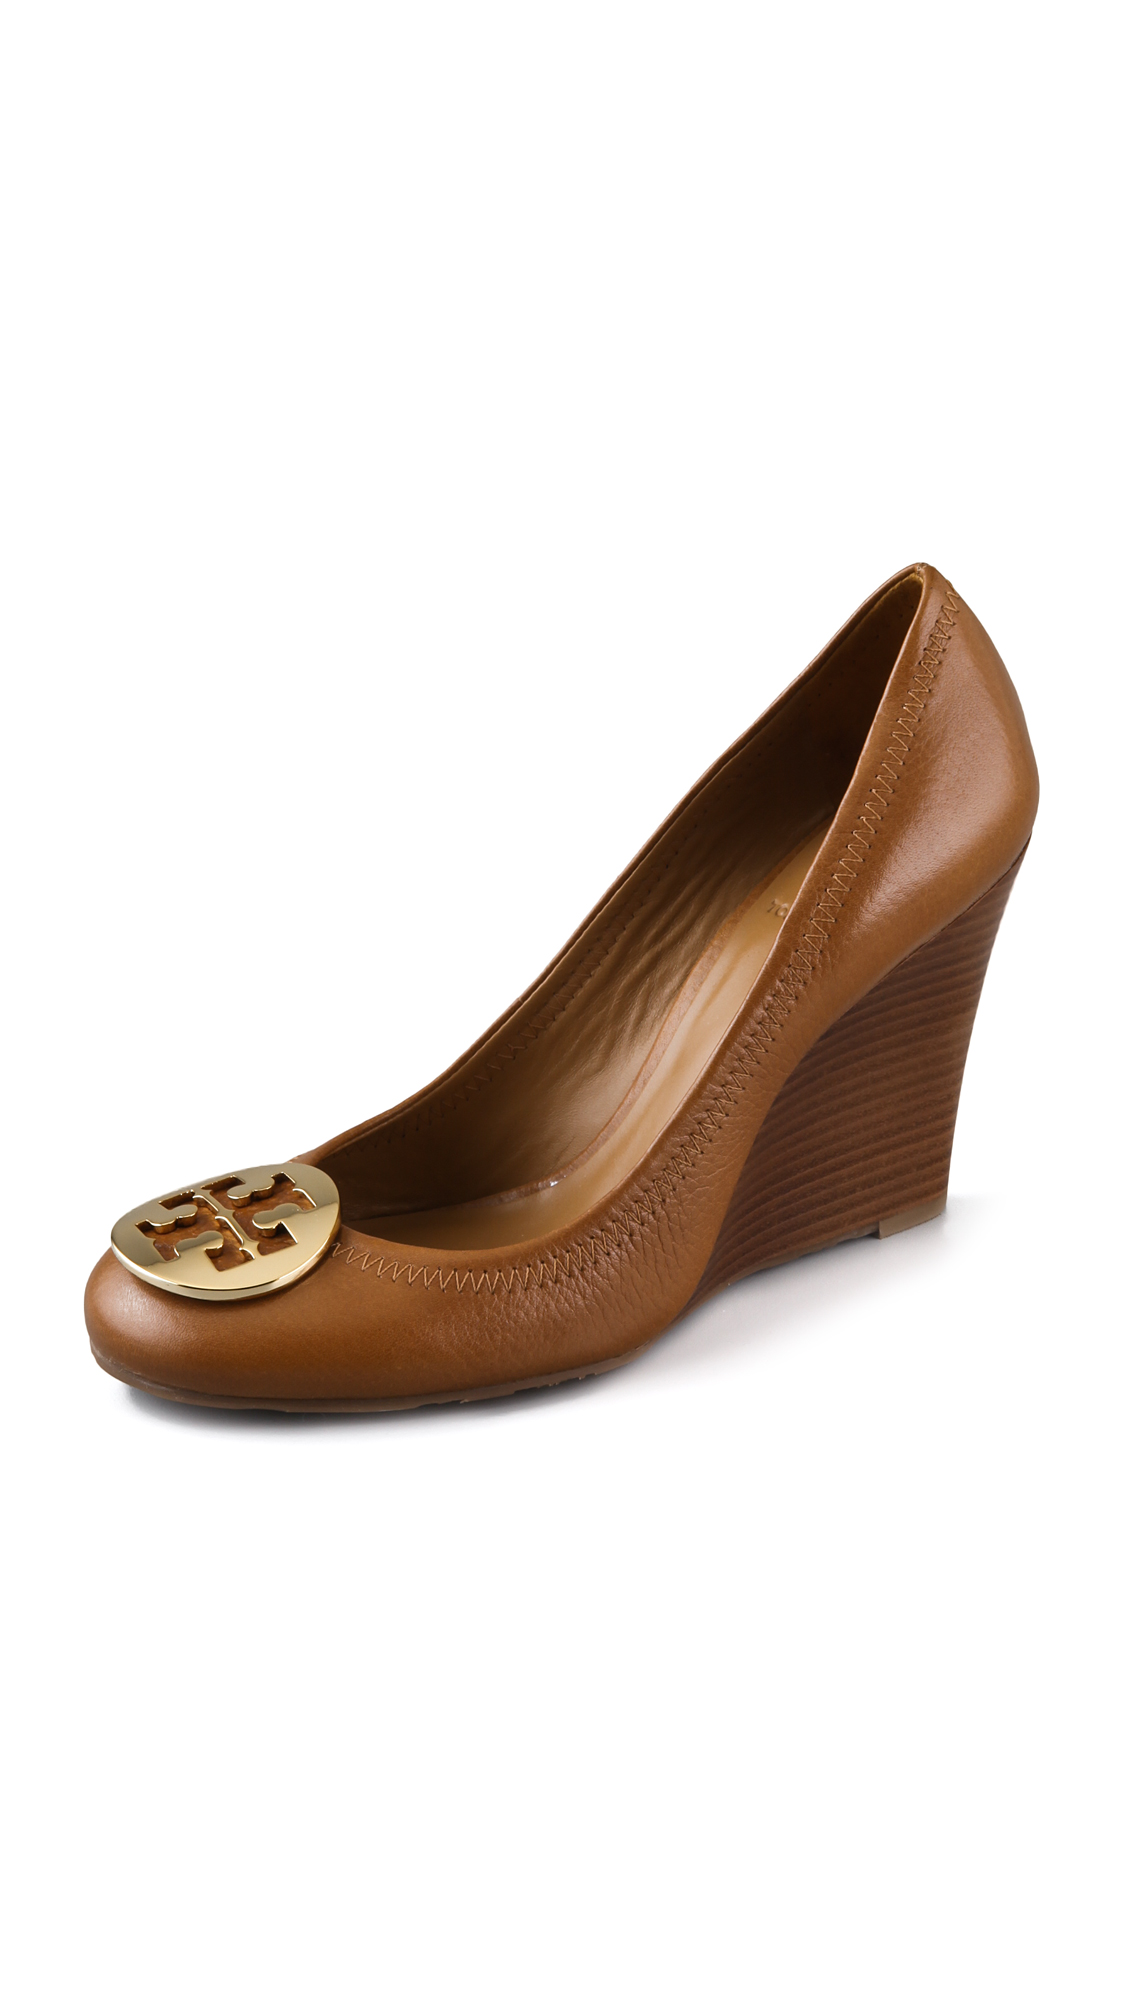 07660ee6d2f523 tory burch phone tory burch at saks tory burch flat shoes sale